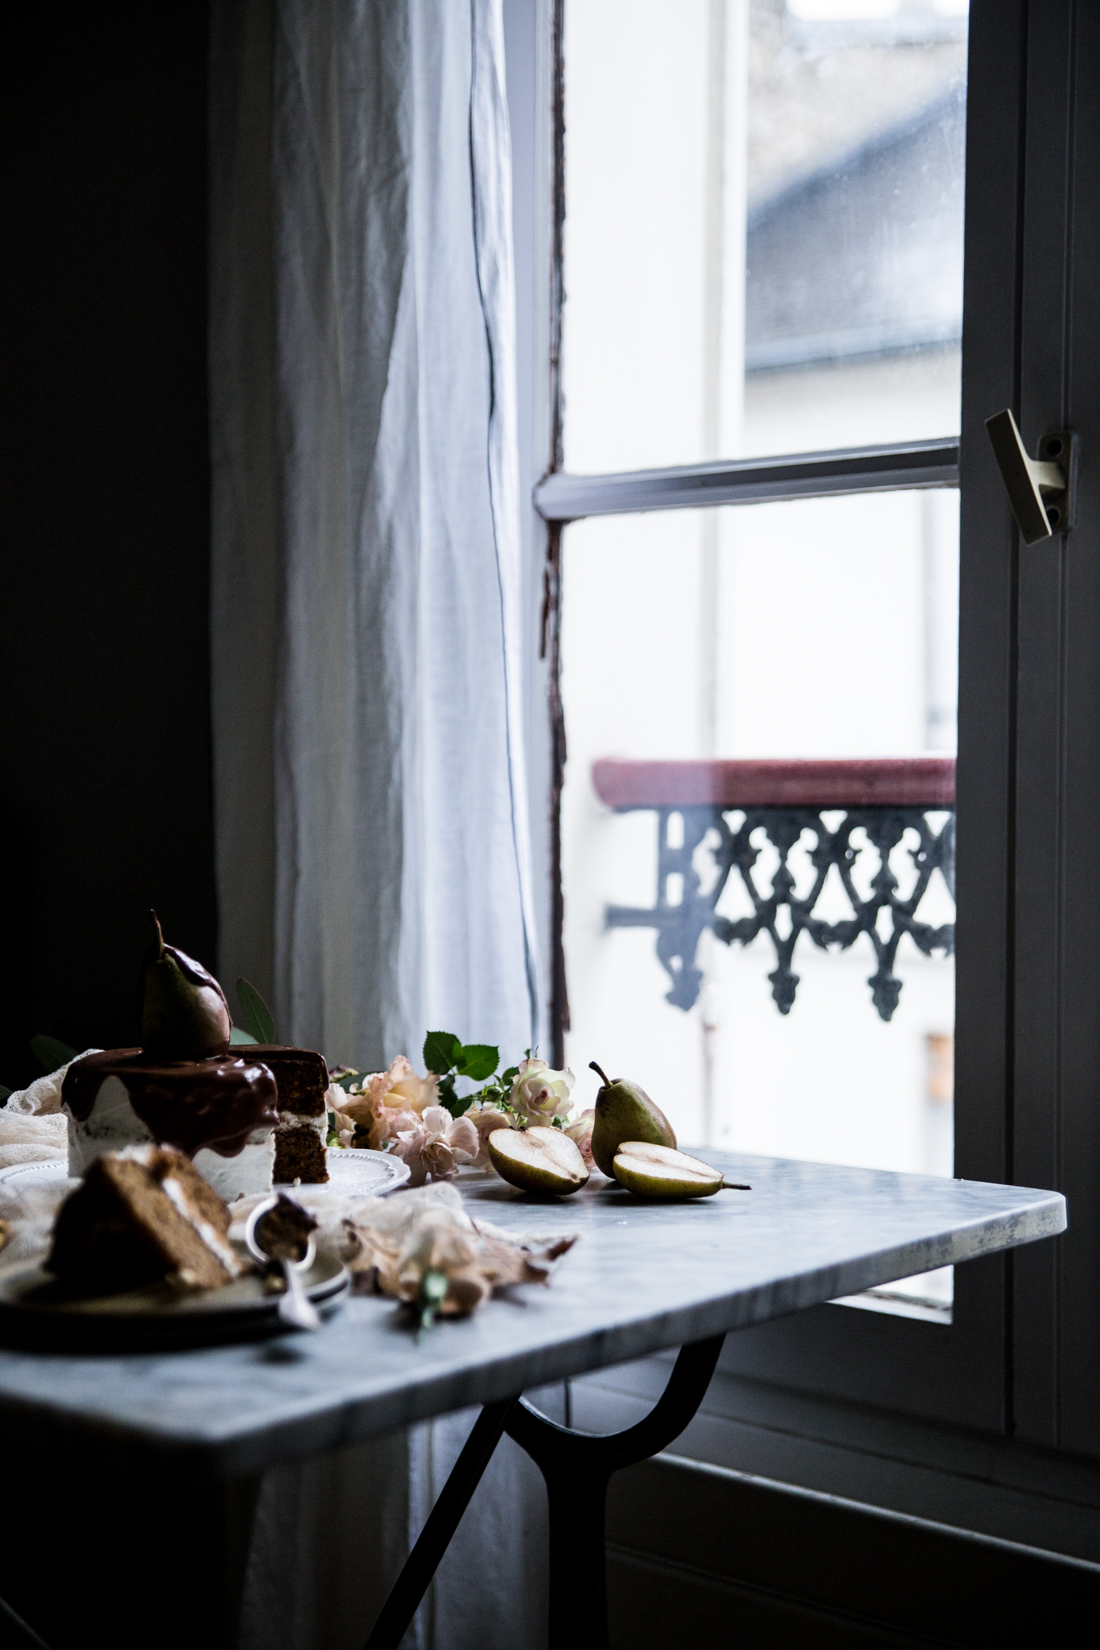 layer-cake-poires-cardamone-glacage-mascarpone-et-vanille-coulant-au-chocolat-ophelies-kitchen-book-ophelie-lauret-11